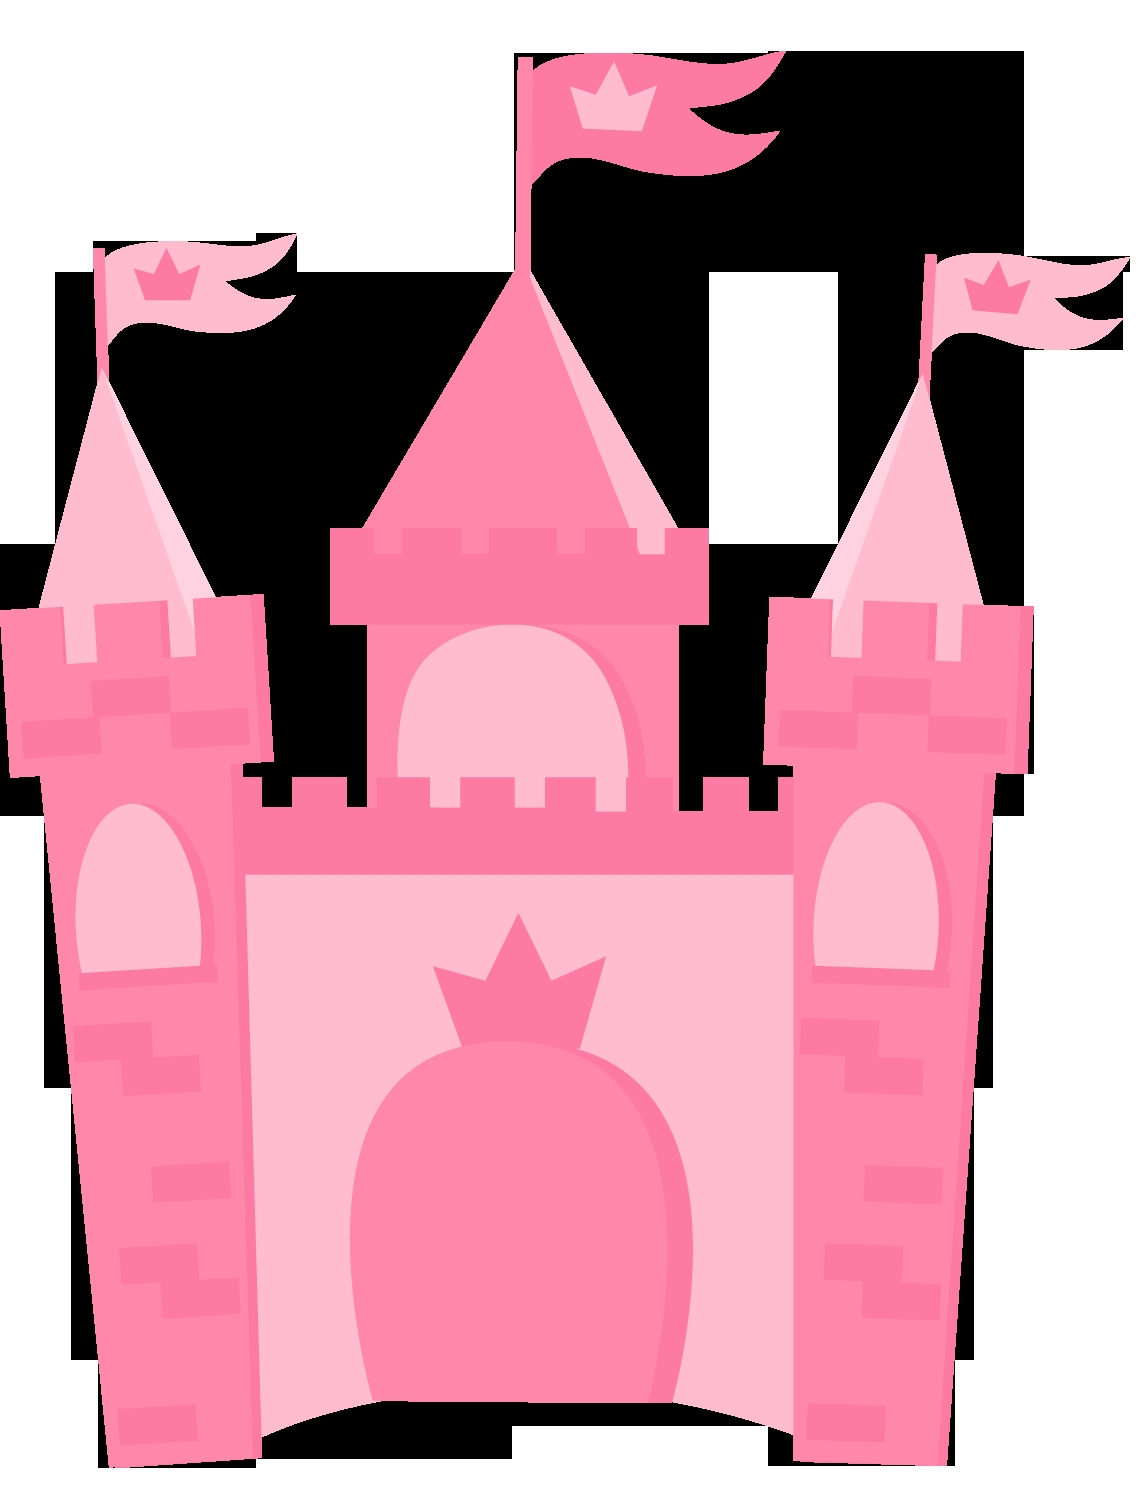 20 Disney Princess Coloring Pages Images | FREE COLORING PAGES - Part 2